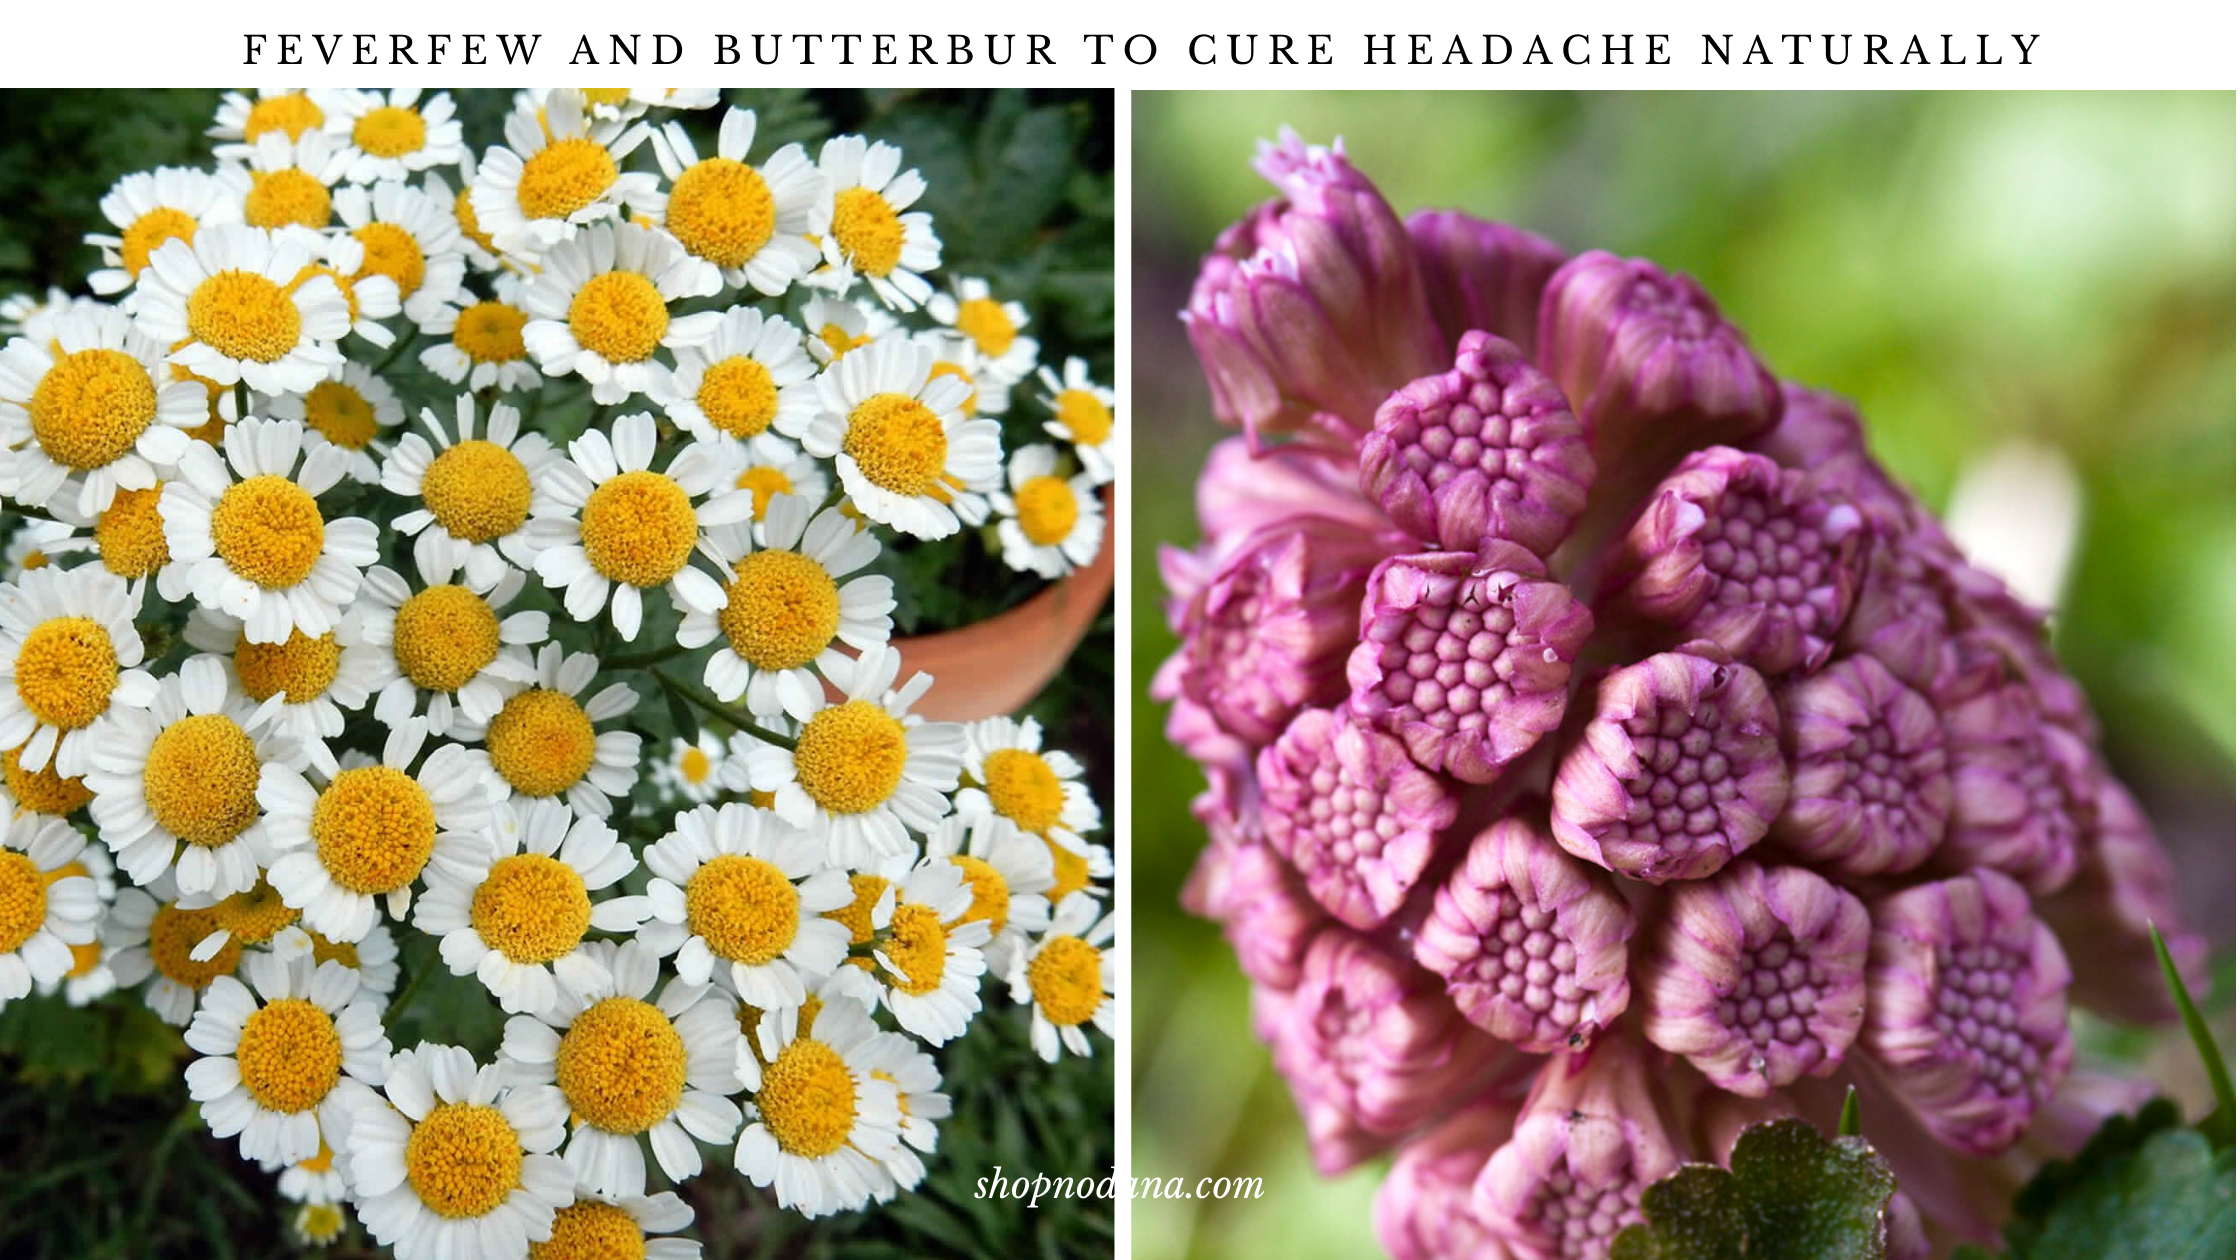 Feverfew and butterbur to cure headache naturally